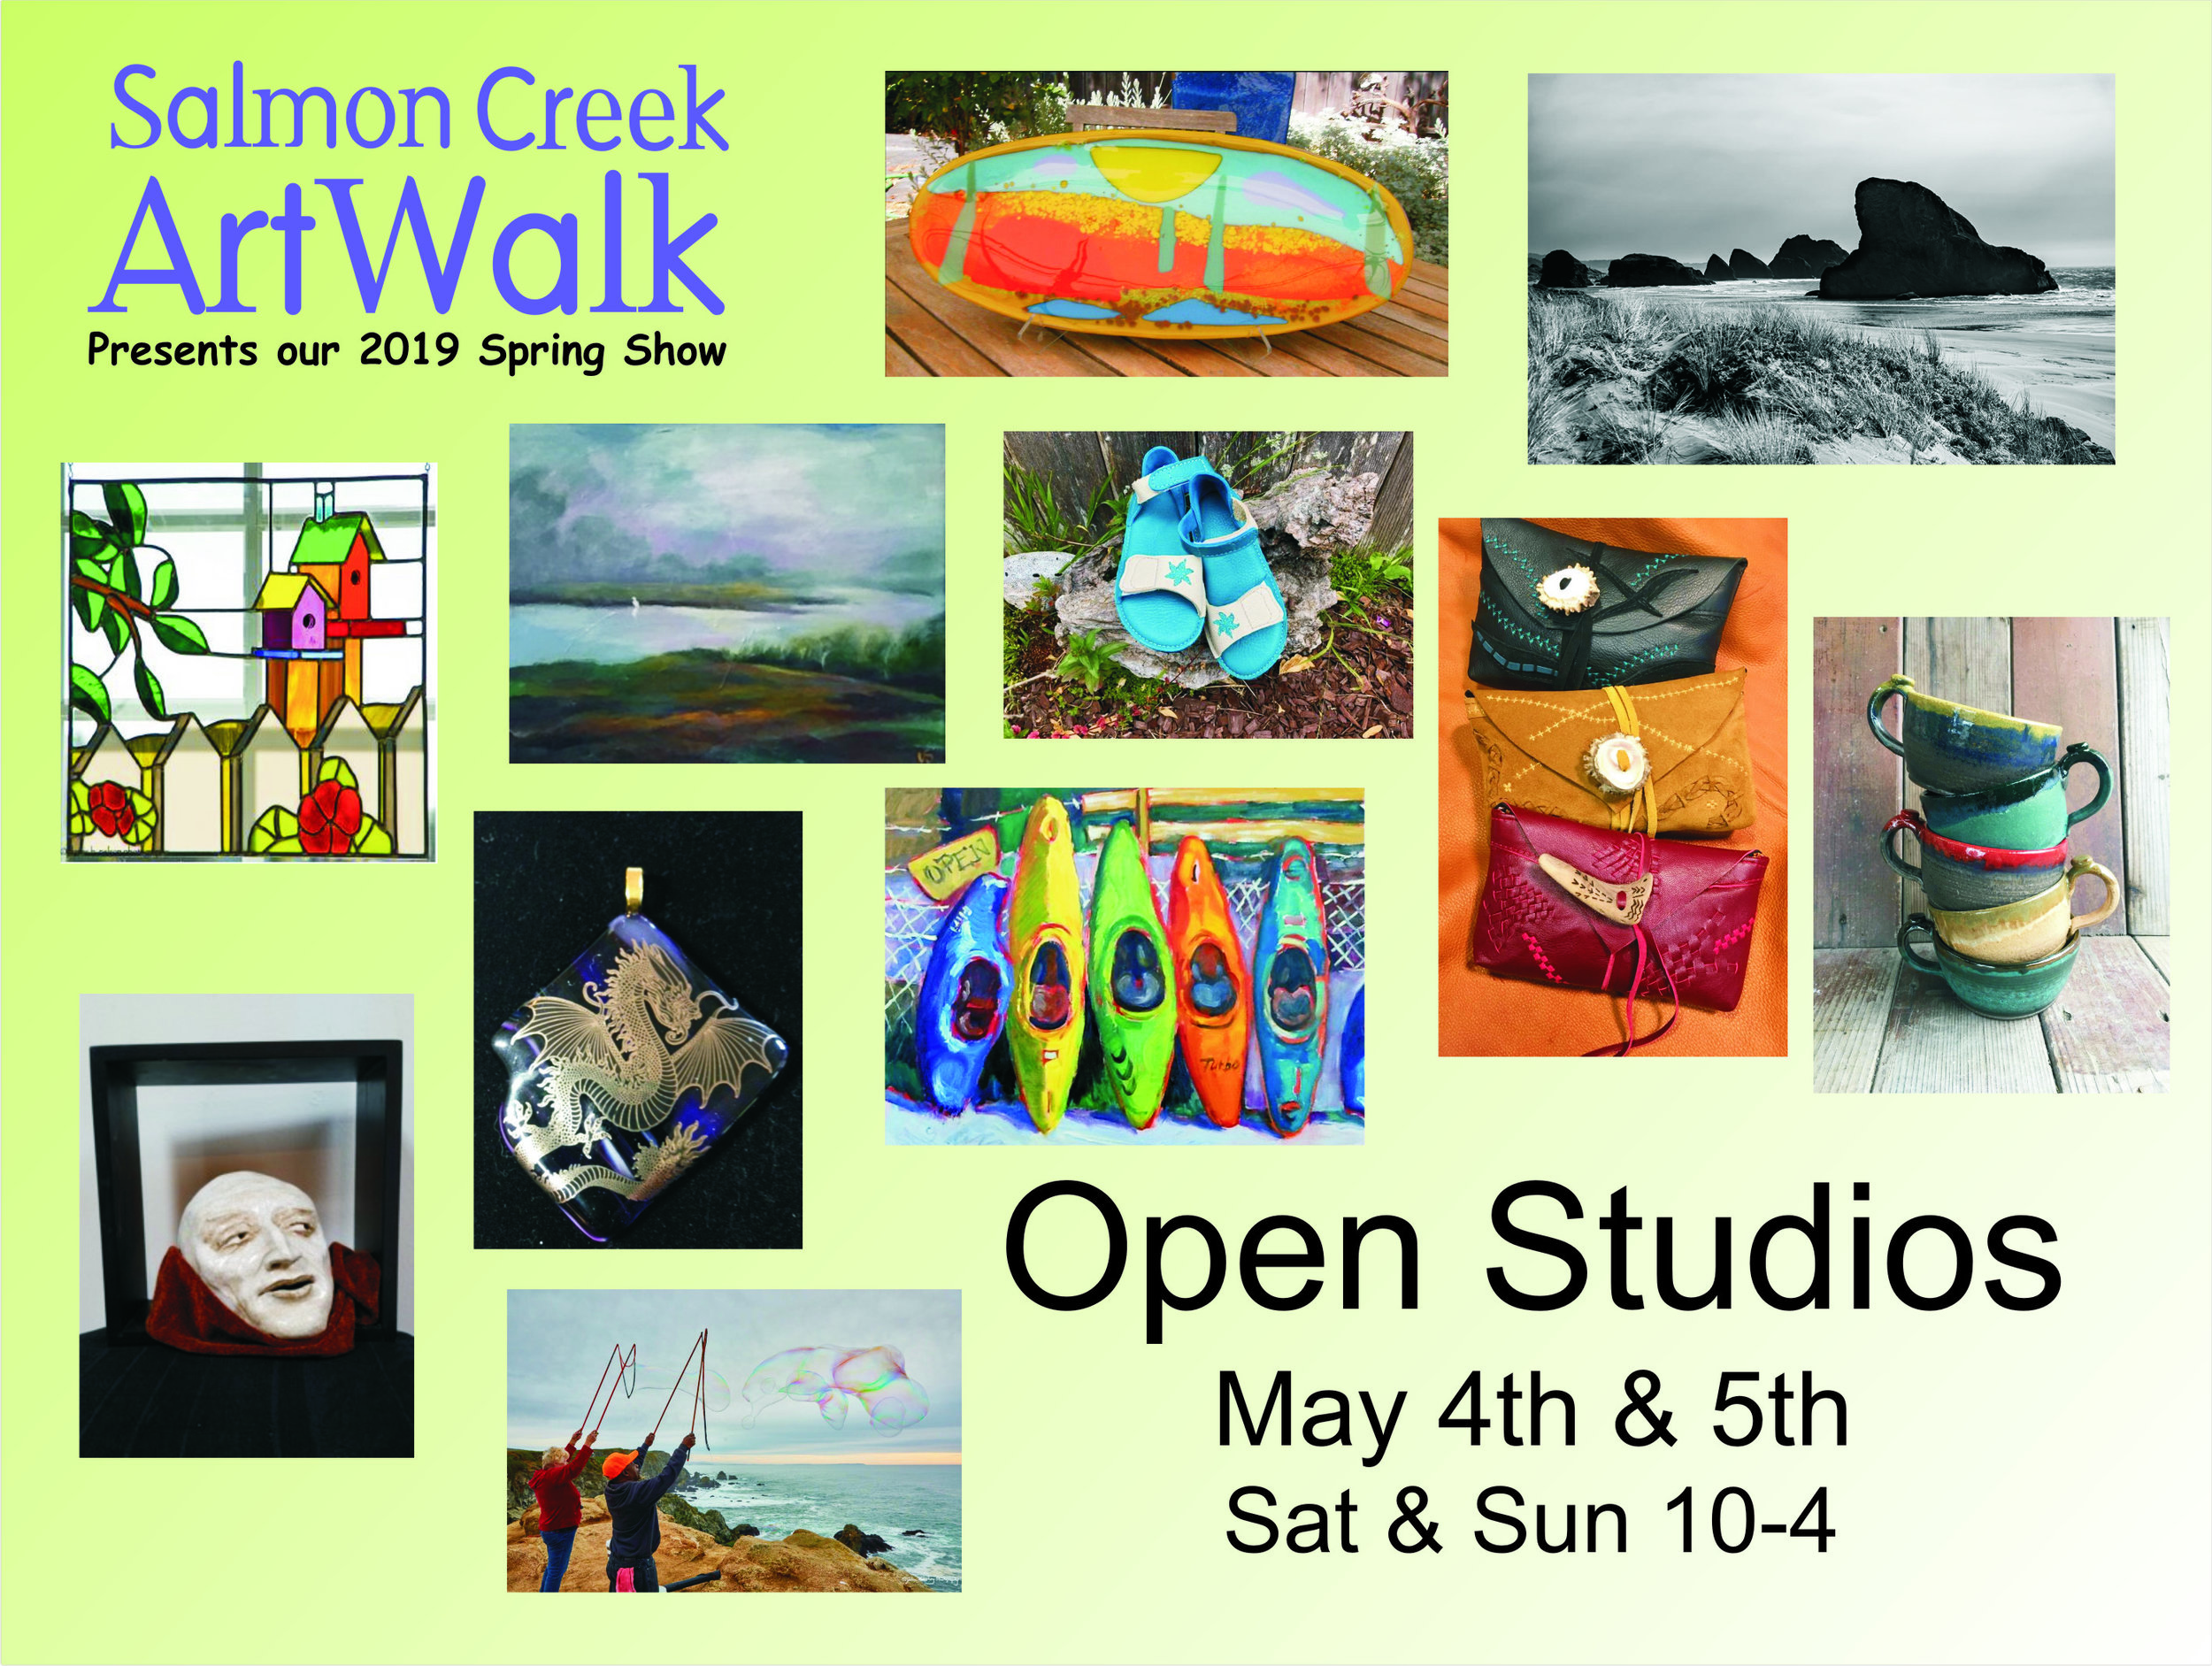 salmoncreekartwalk2019SPRINGfront copy.jpeg